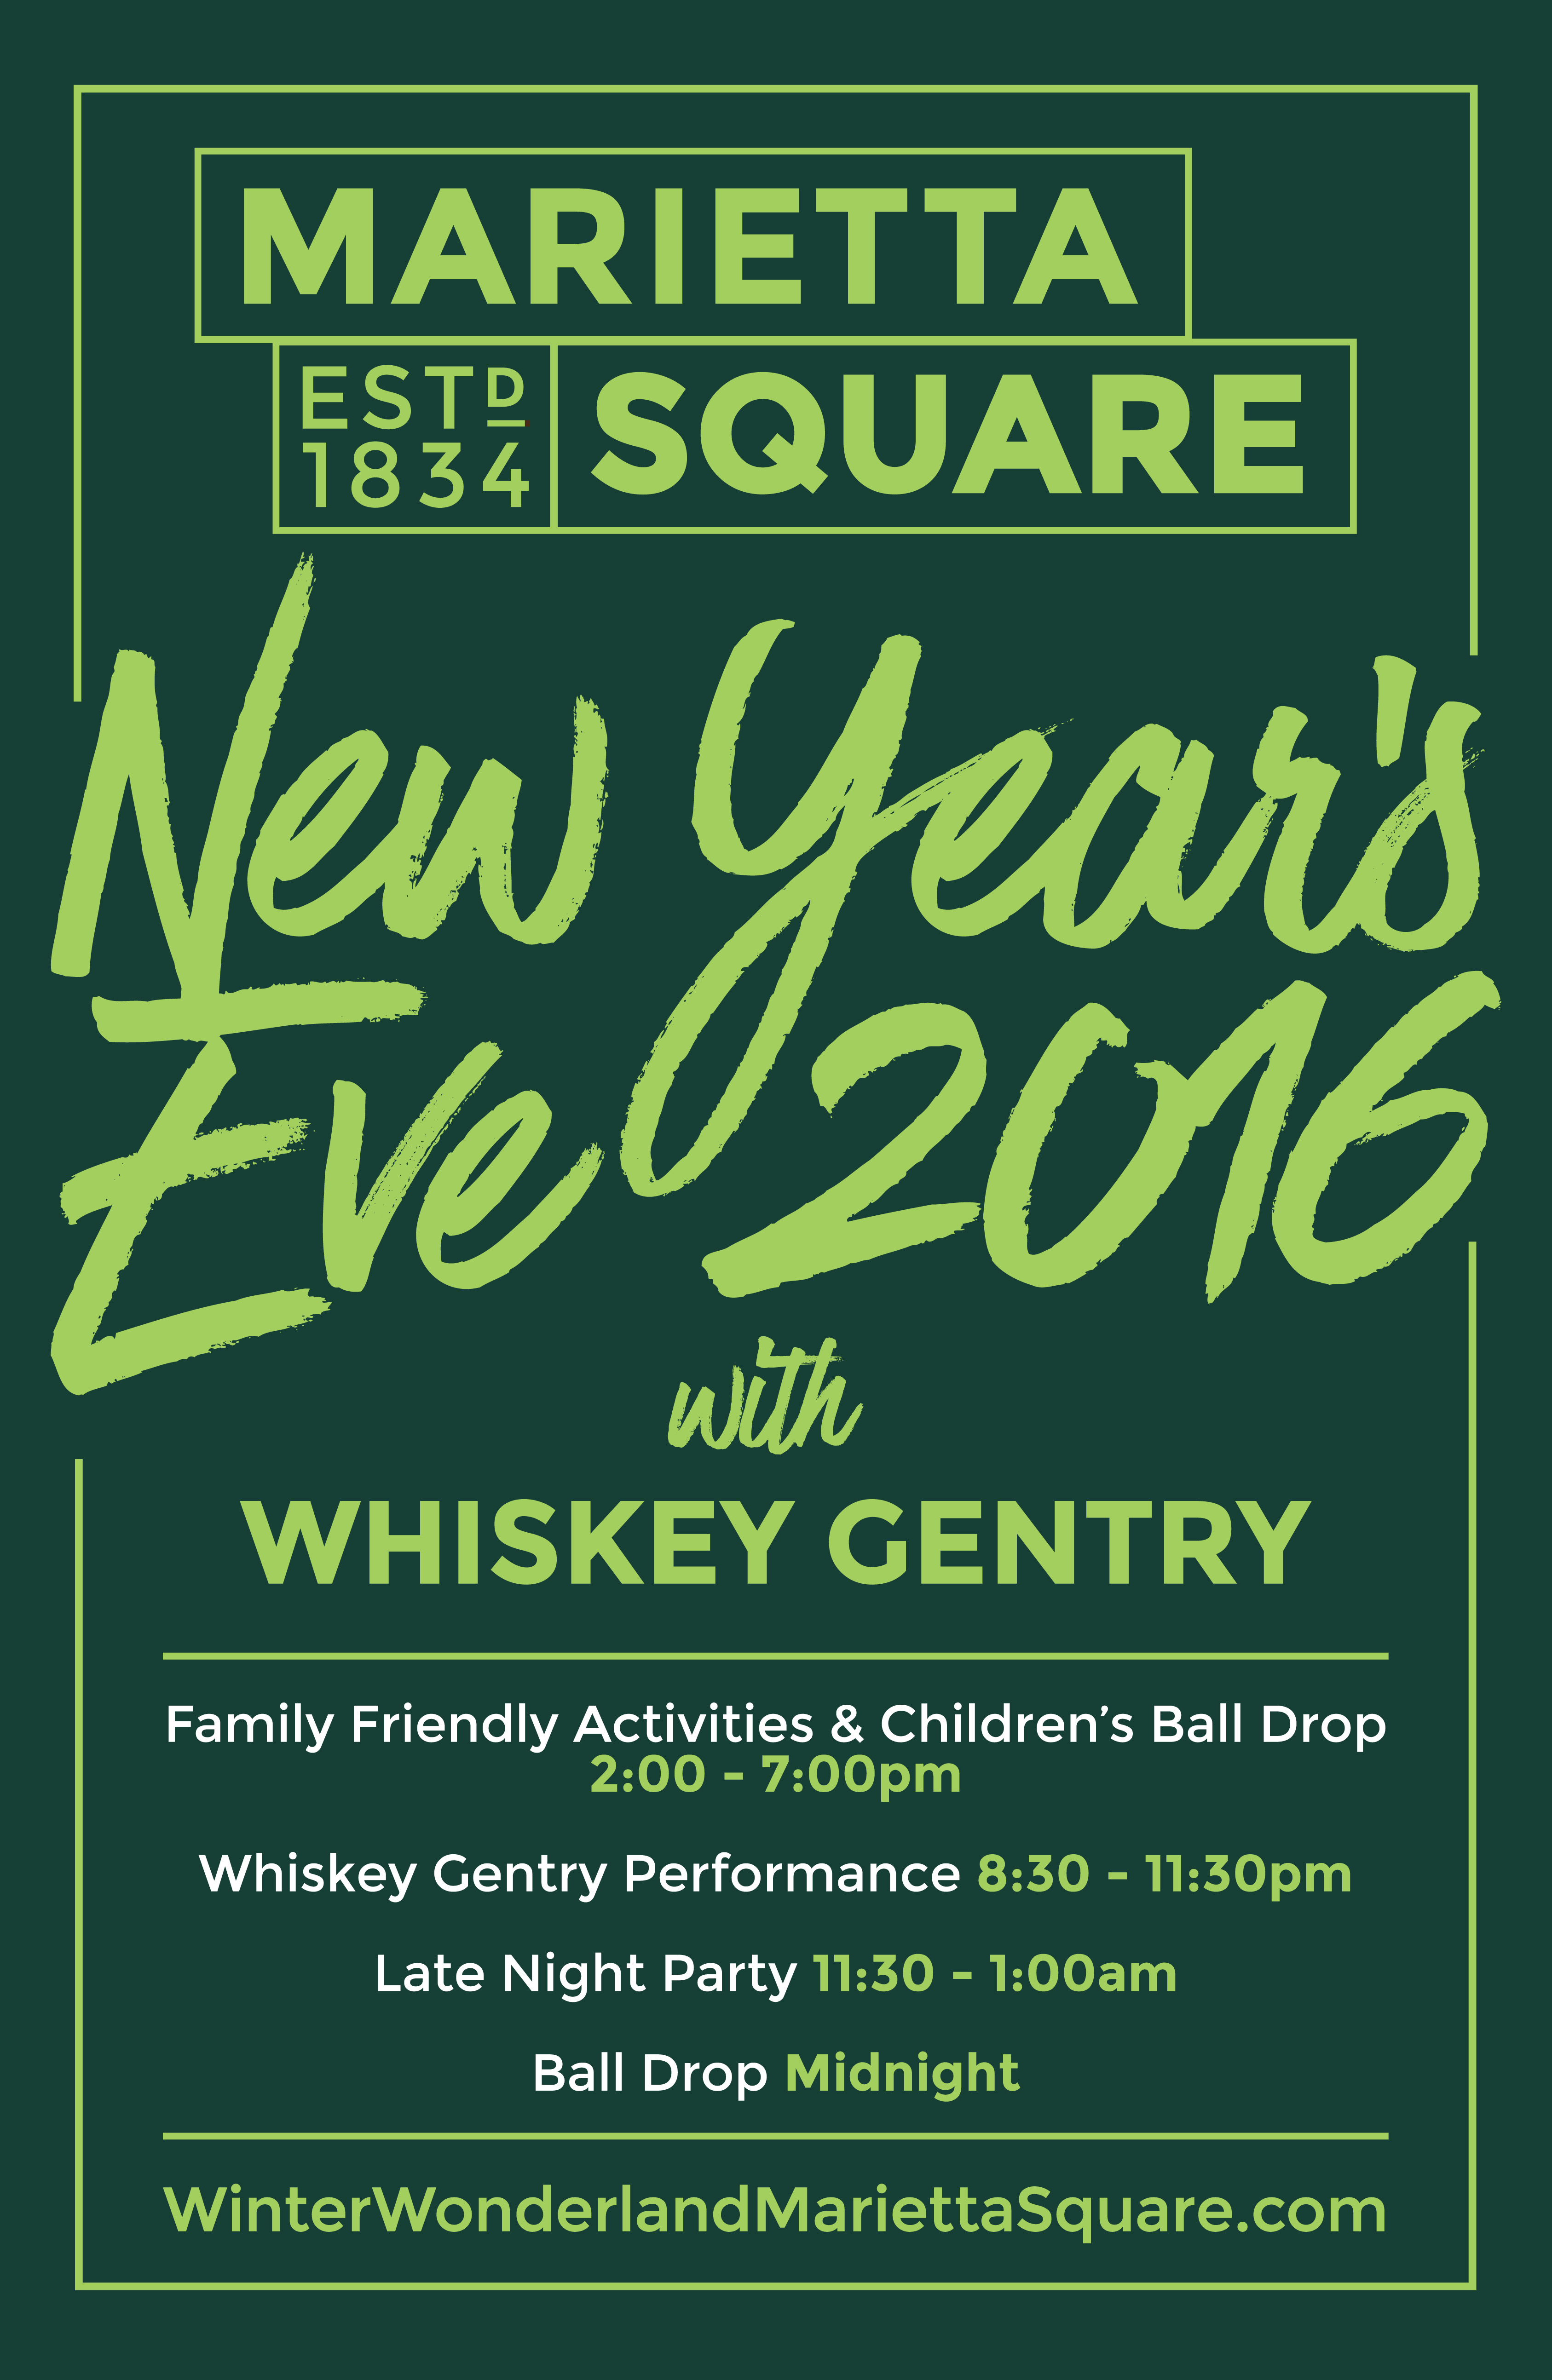 New Year's Eve Marietta Square poster from mariettacalendar.com